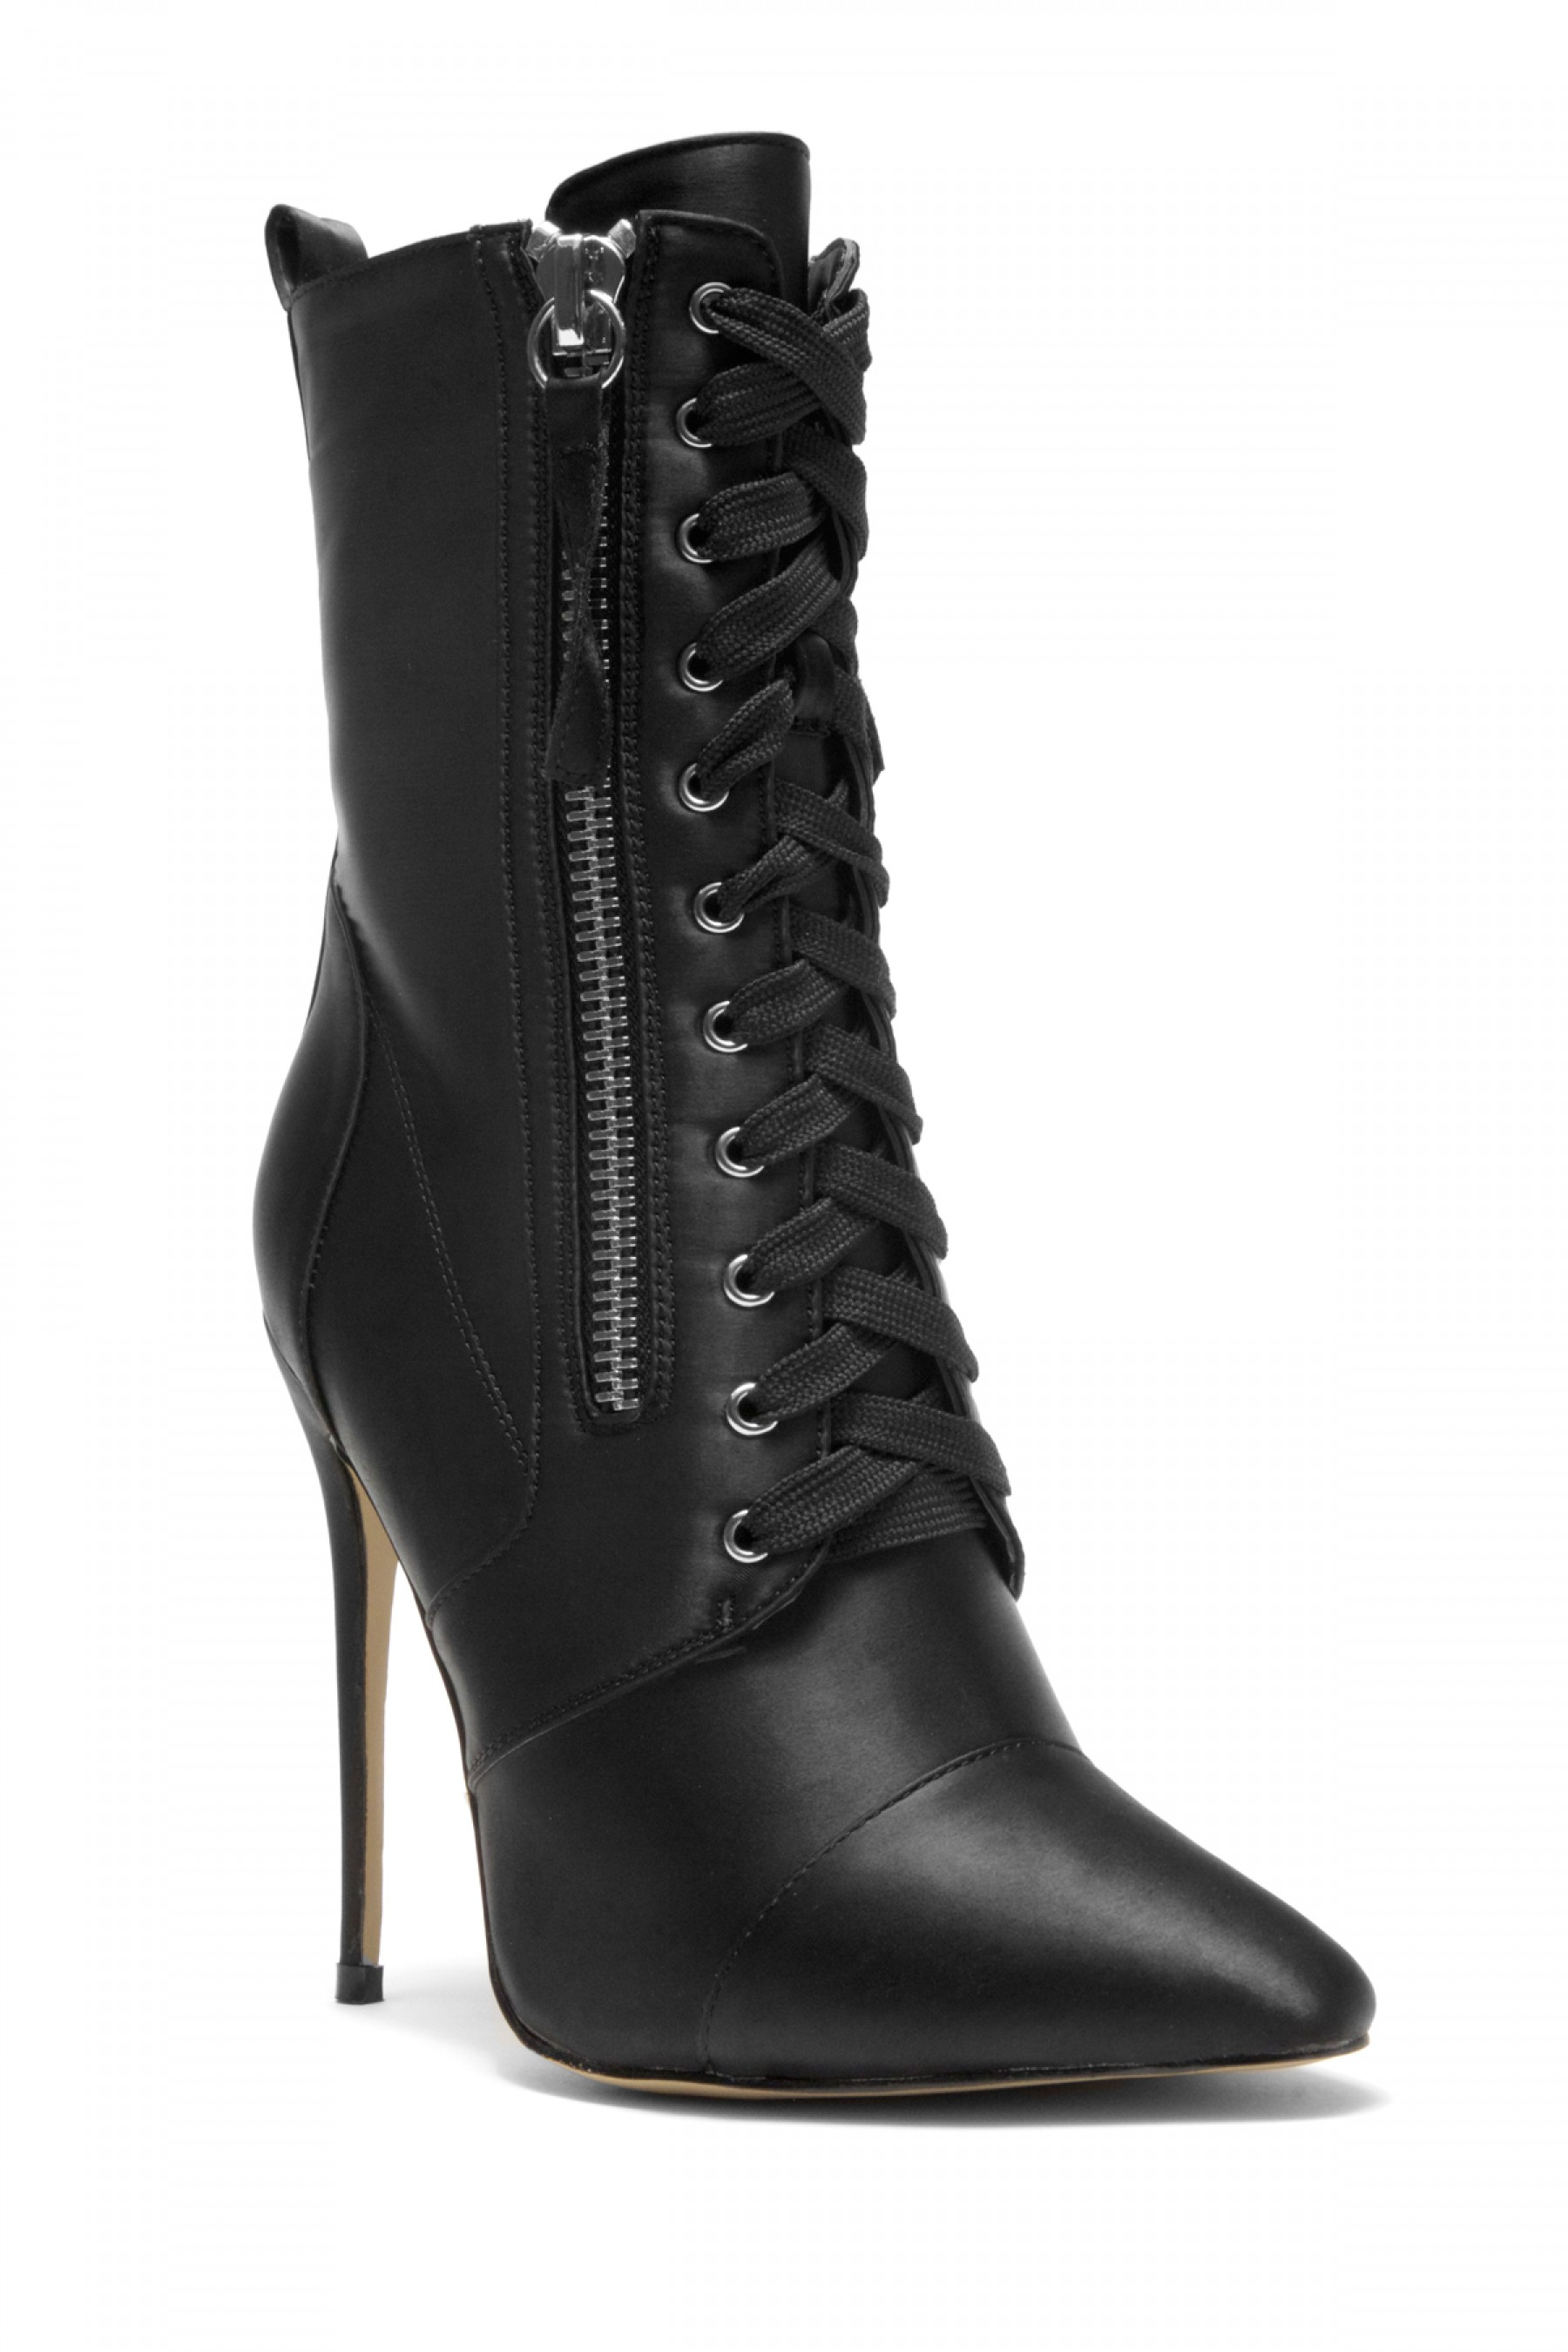 HerStyle Kylinna Zip Detail Lace Up stiletto Ankle Boot in Satin (Black)